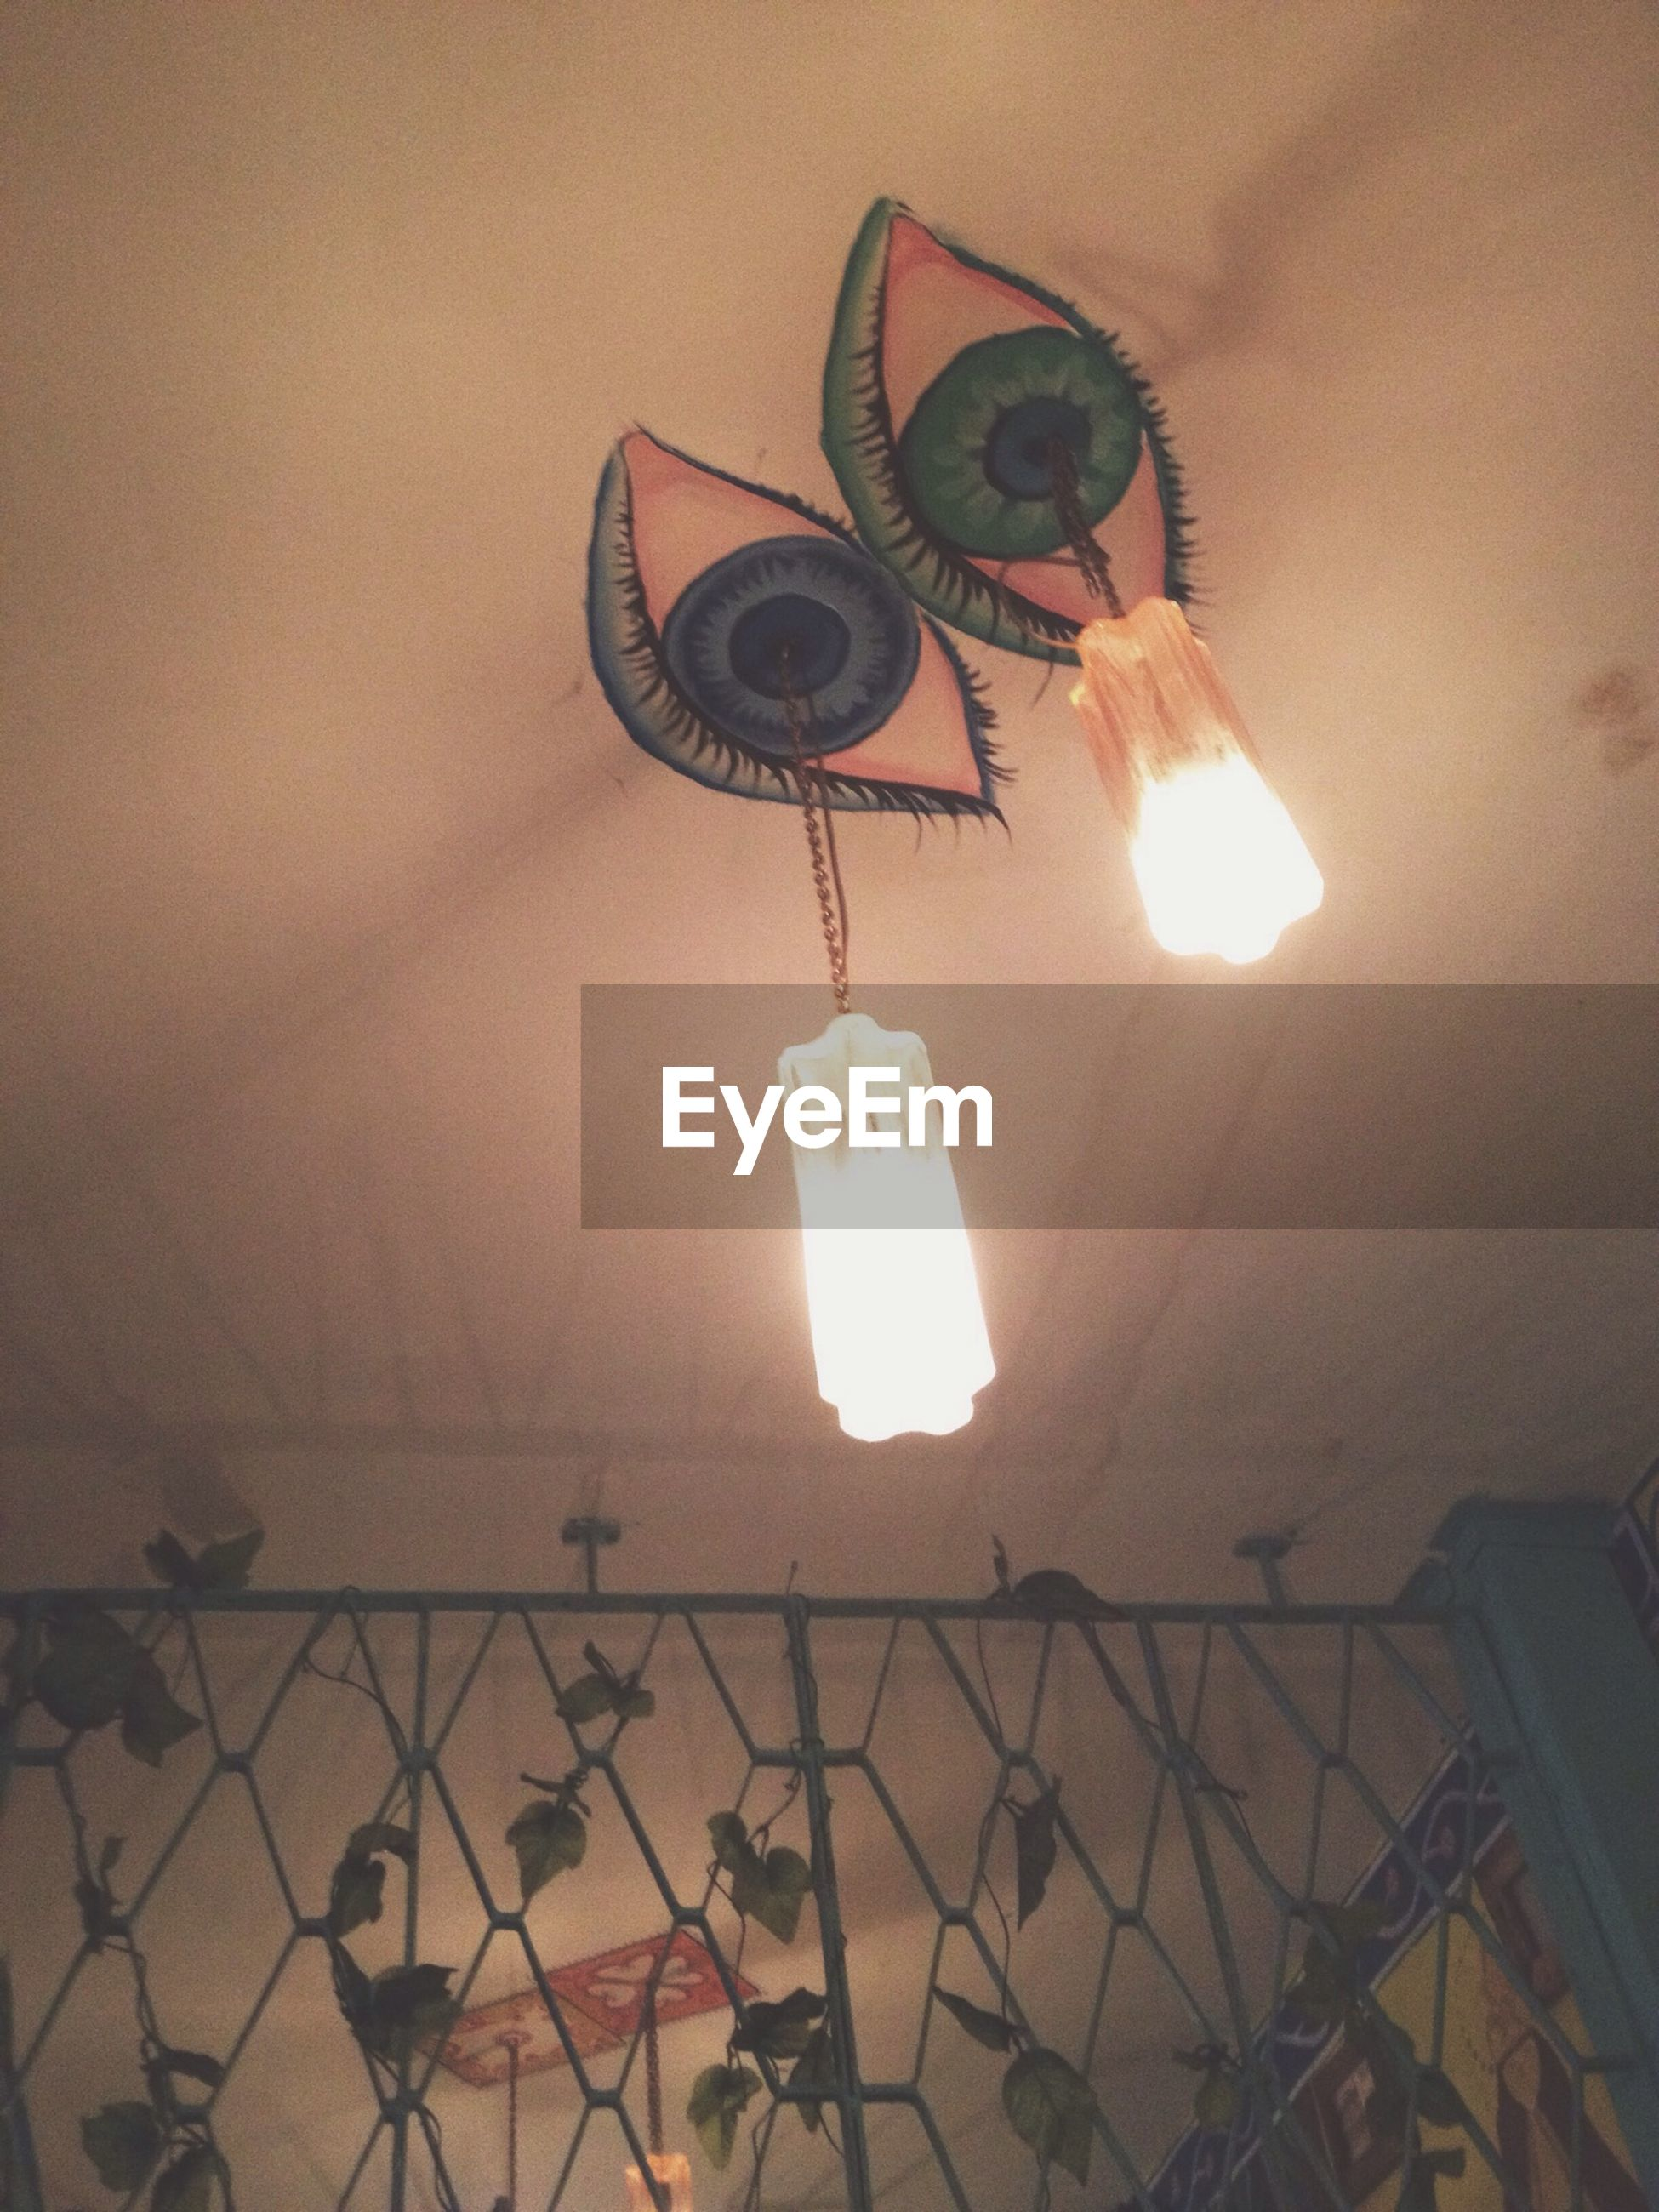 lighting equipment, indoors, illuminated, electricity, hanging, ceiling, electric lamp, electric light, low angle view, lamp, glowing, decoration, wall - building feature, light bulb, light - natural phenomenon, home interior, lantern, lit, chandelier, no people